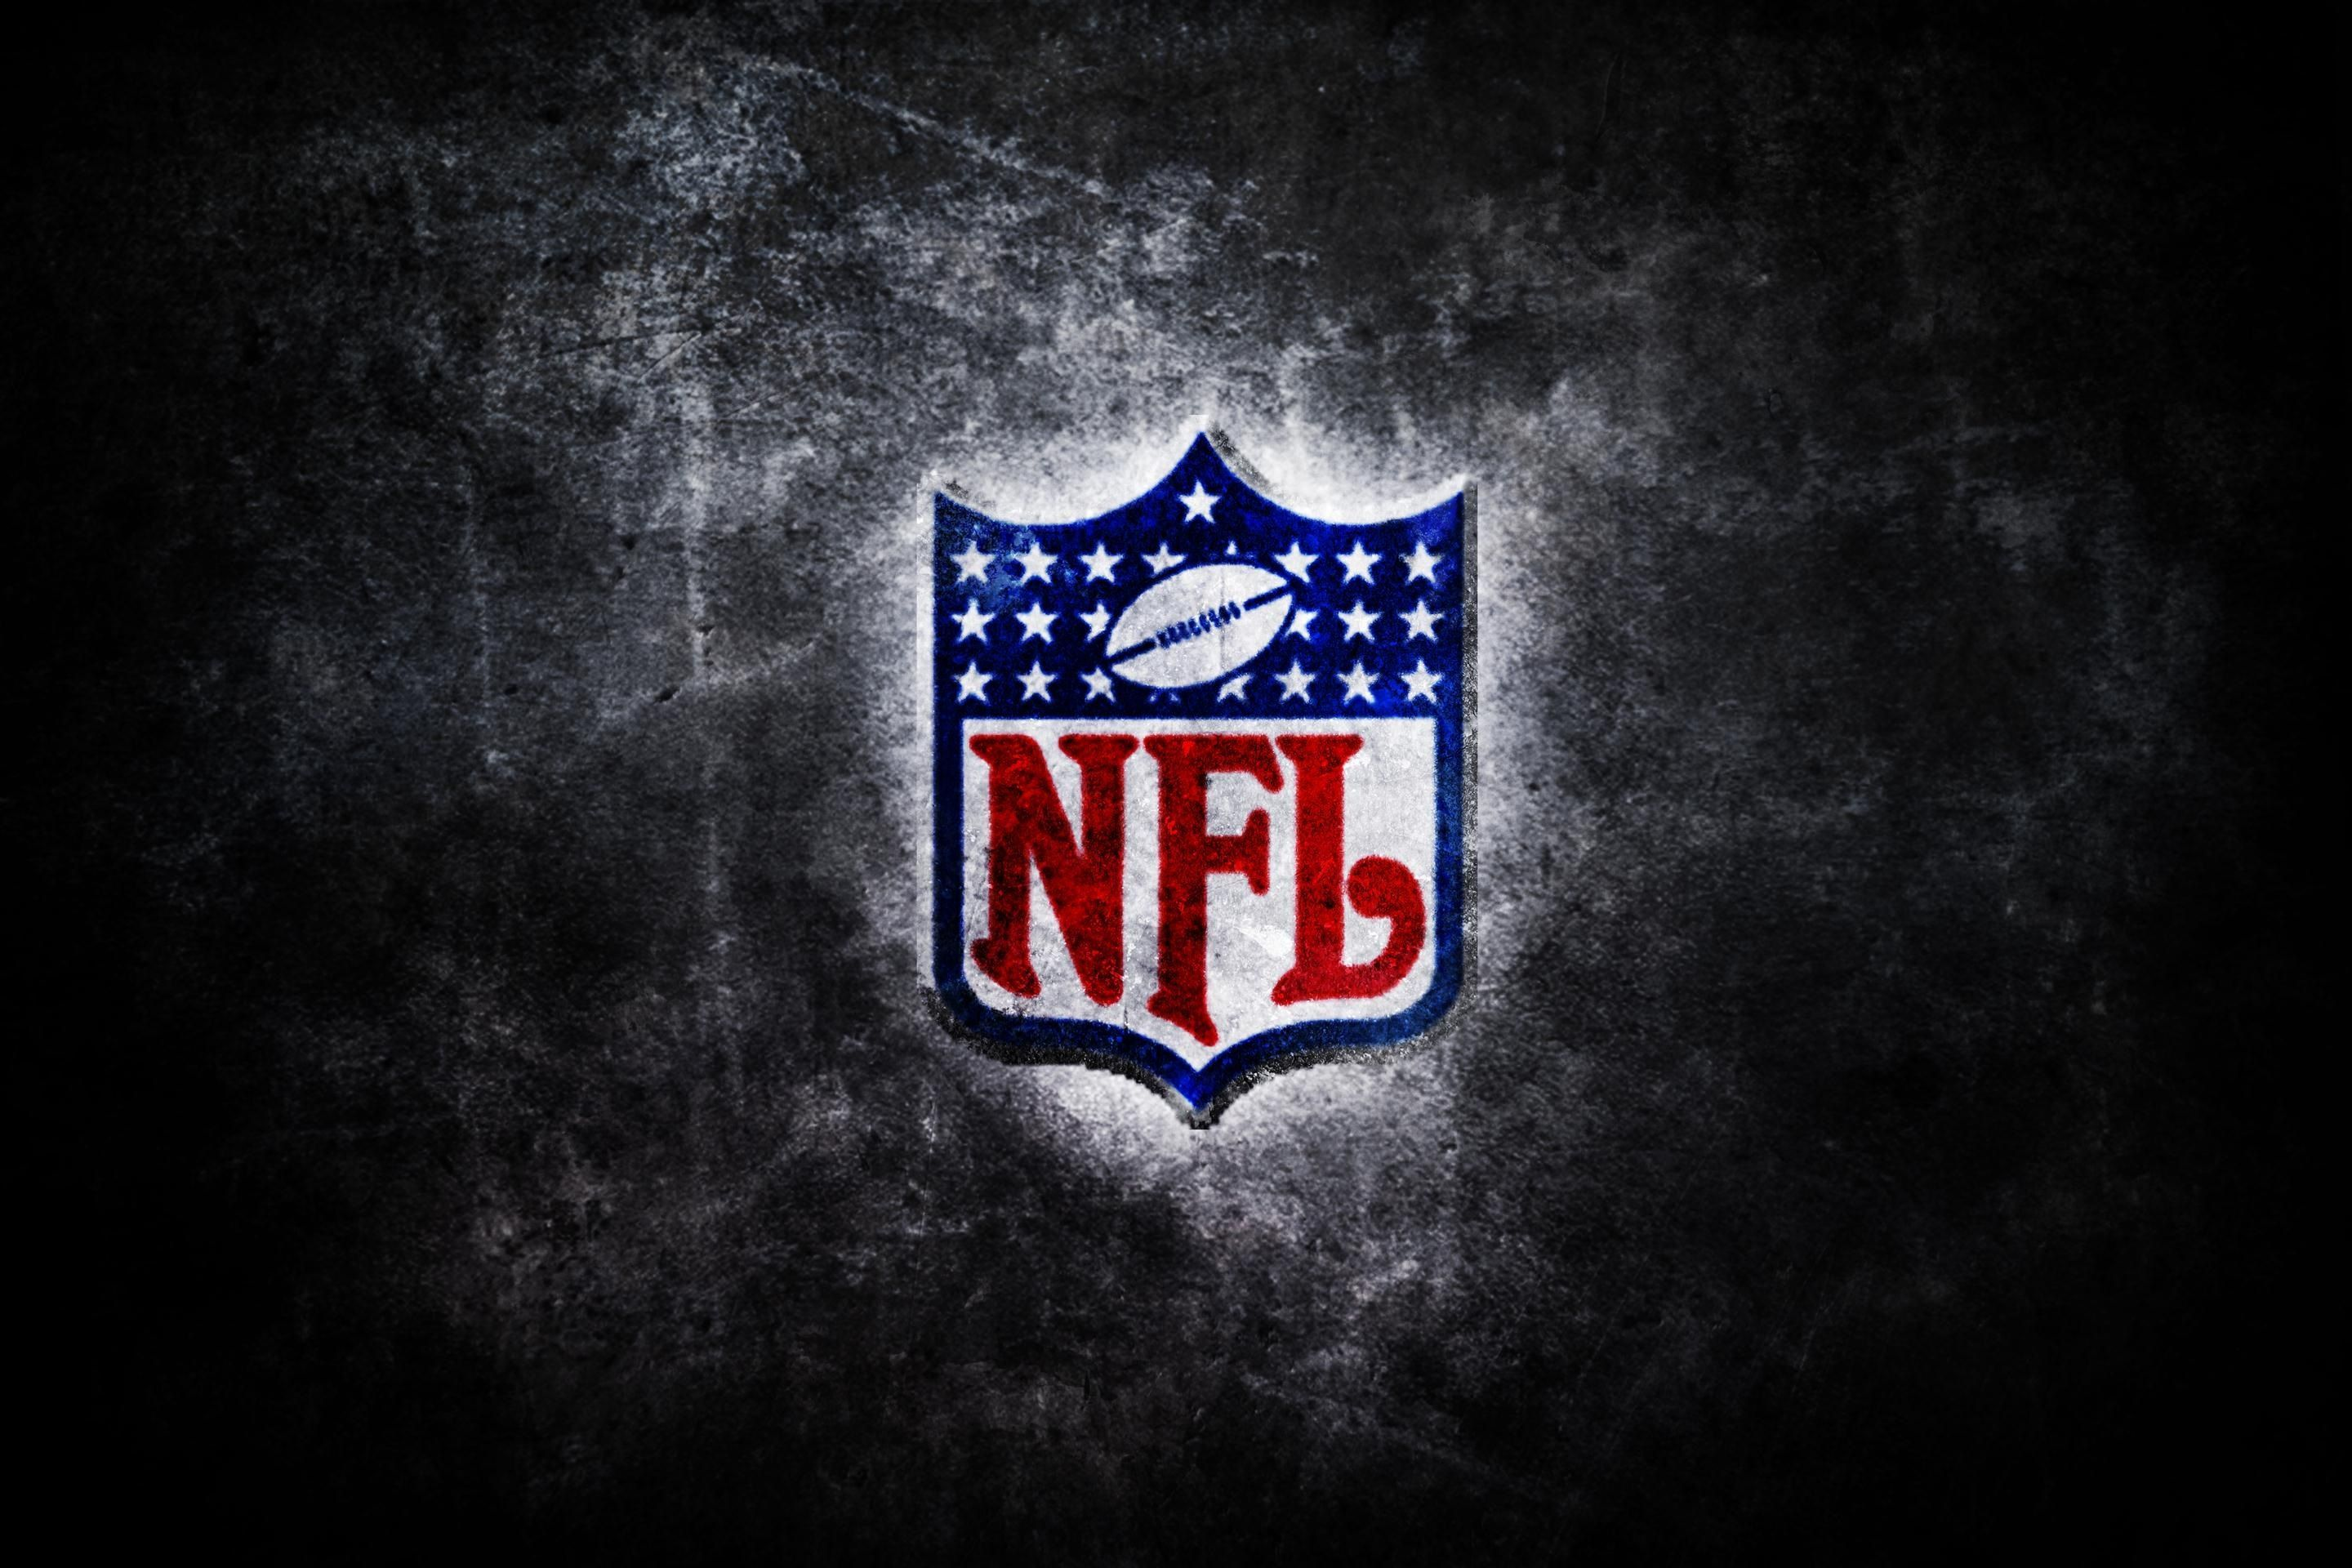 Wallpaper Nfl